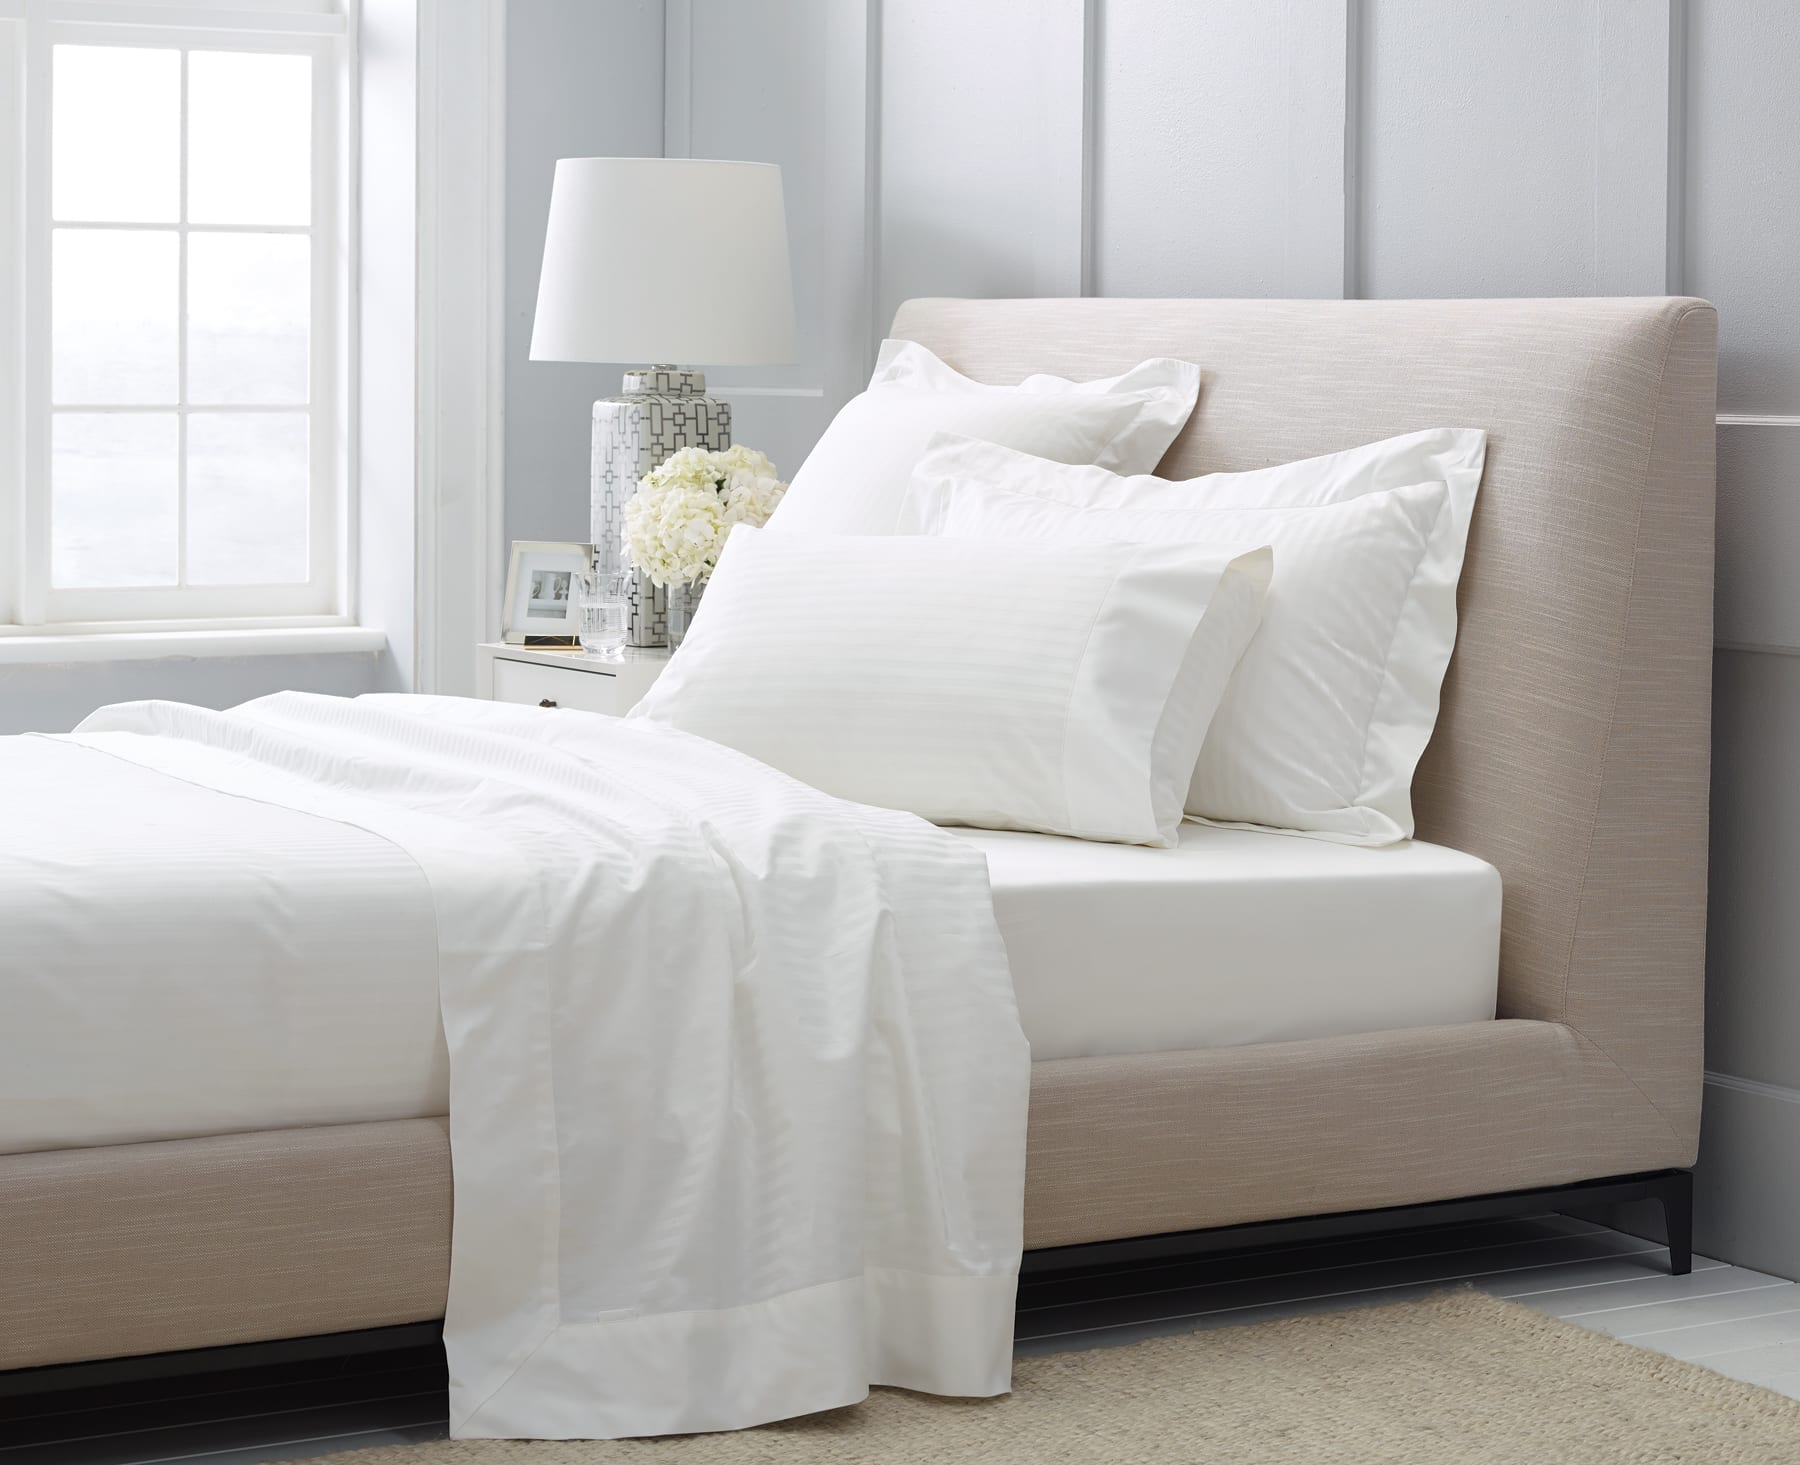 Mckenzie Bedroom Furniture Sheridan Millennia 1200tc Sheet Set Mckenzie Willis